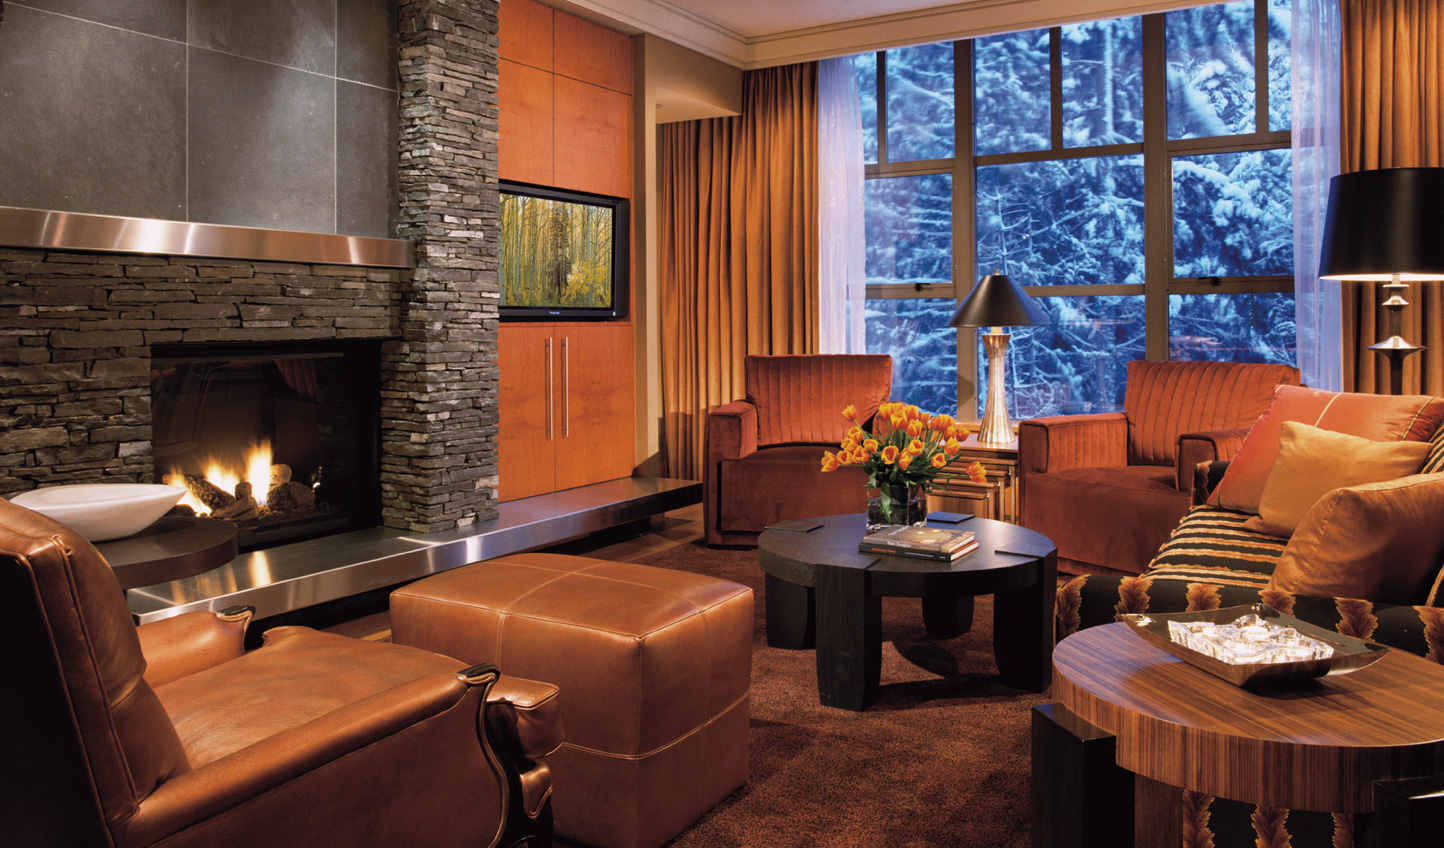 Classic design creates a warm and inviting atmosphere